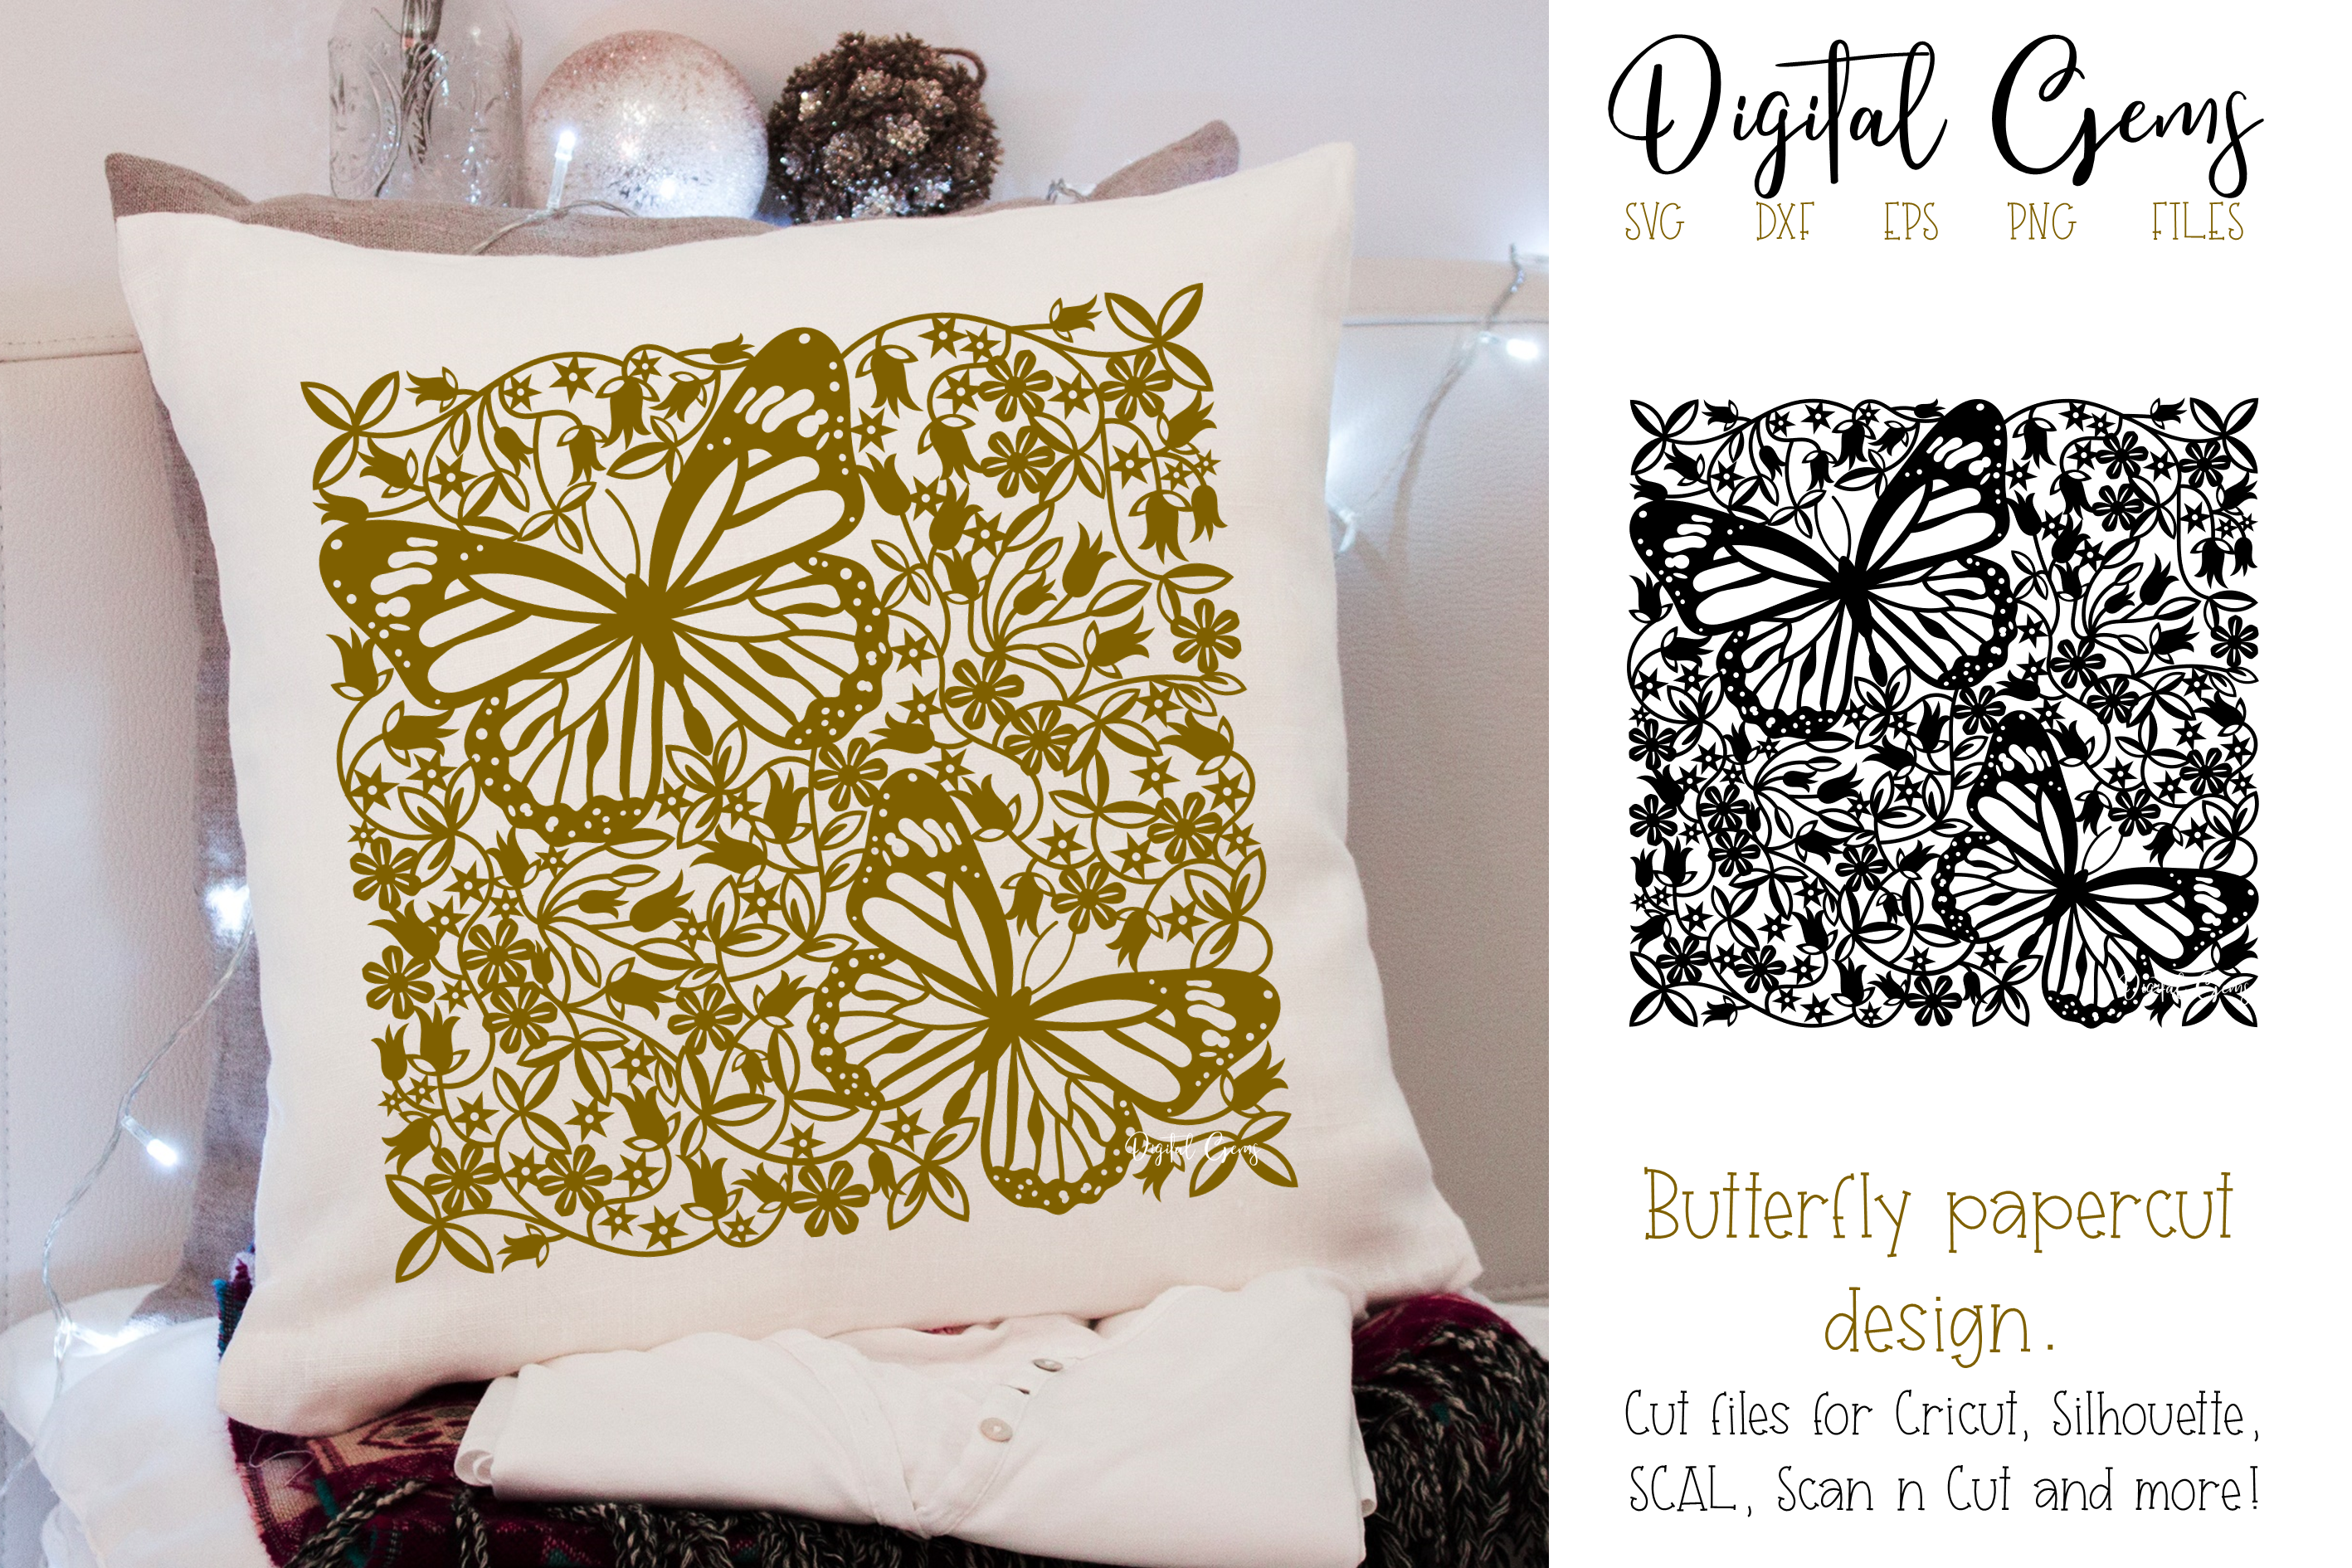 Butterfly paper cut design SVG / DXF / EPS / PNG files example image 1